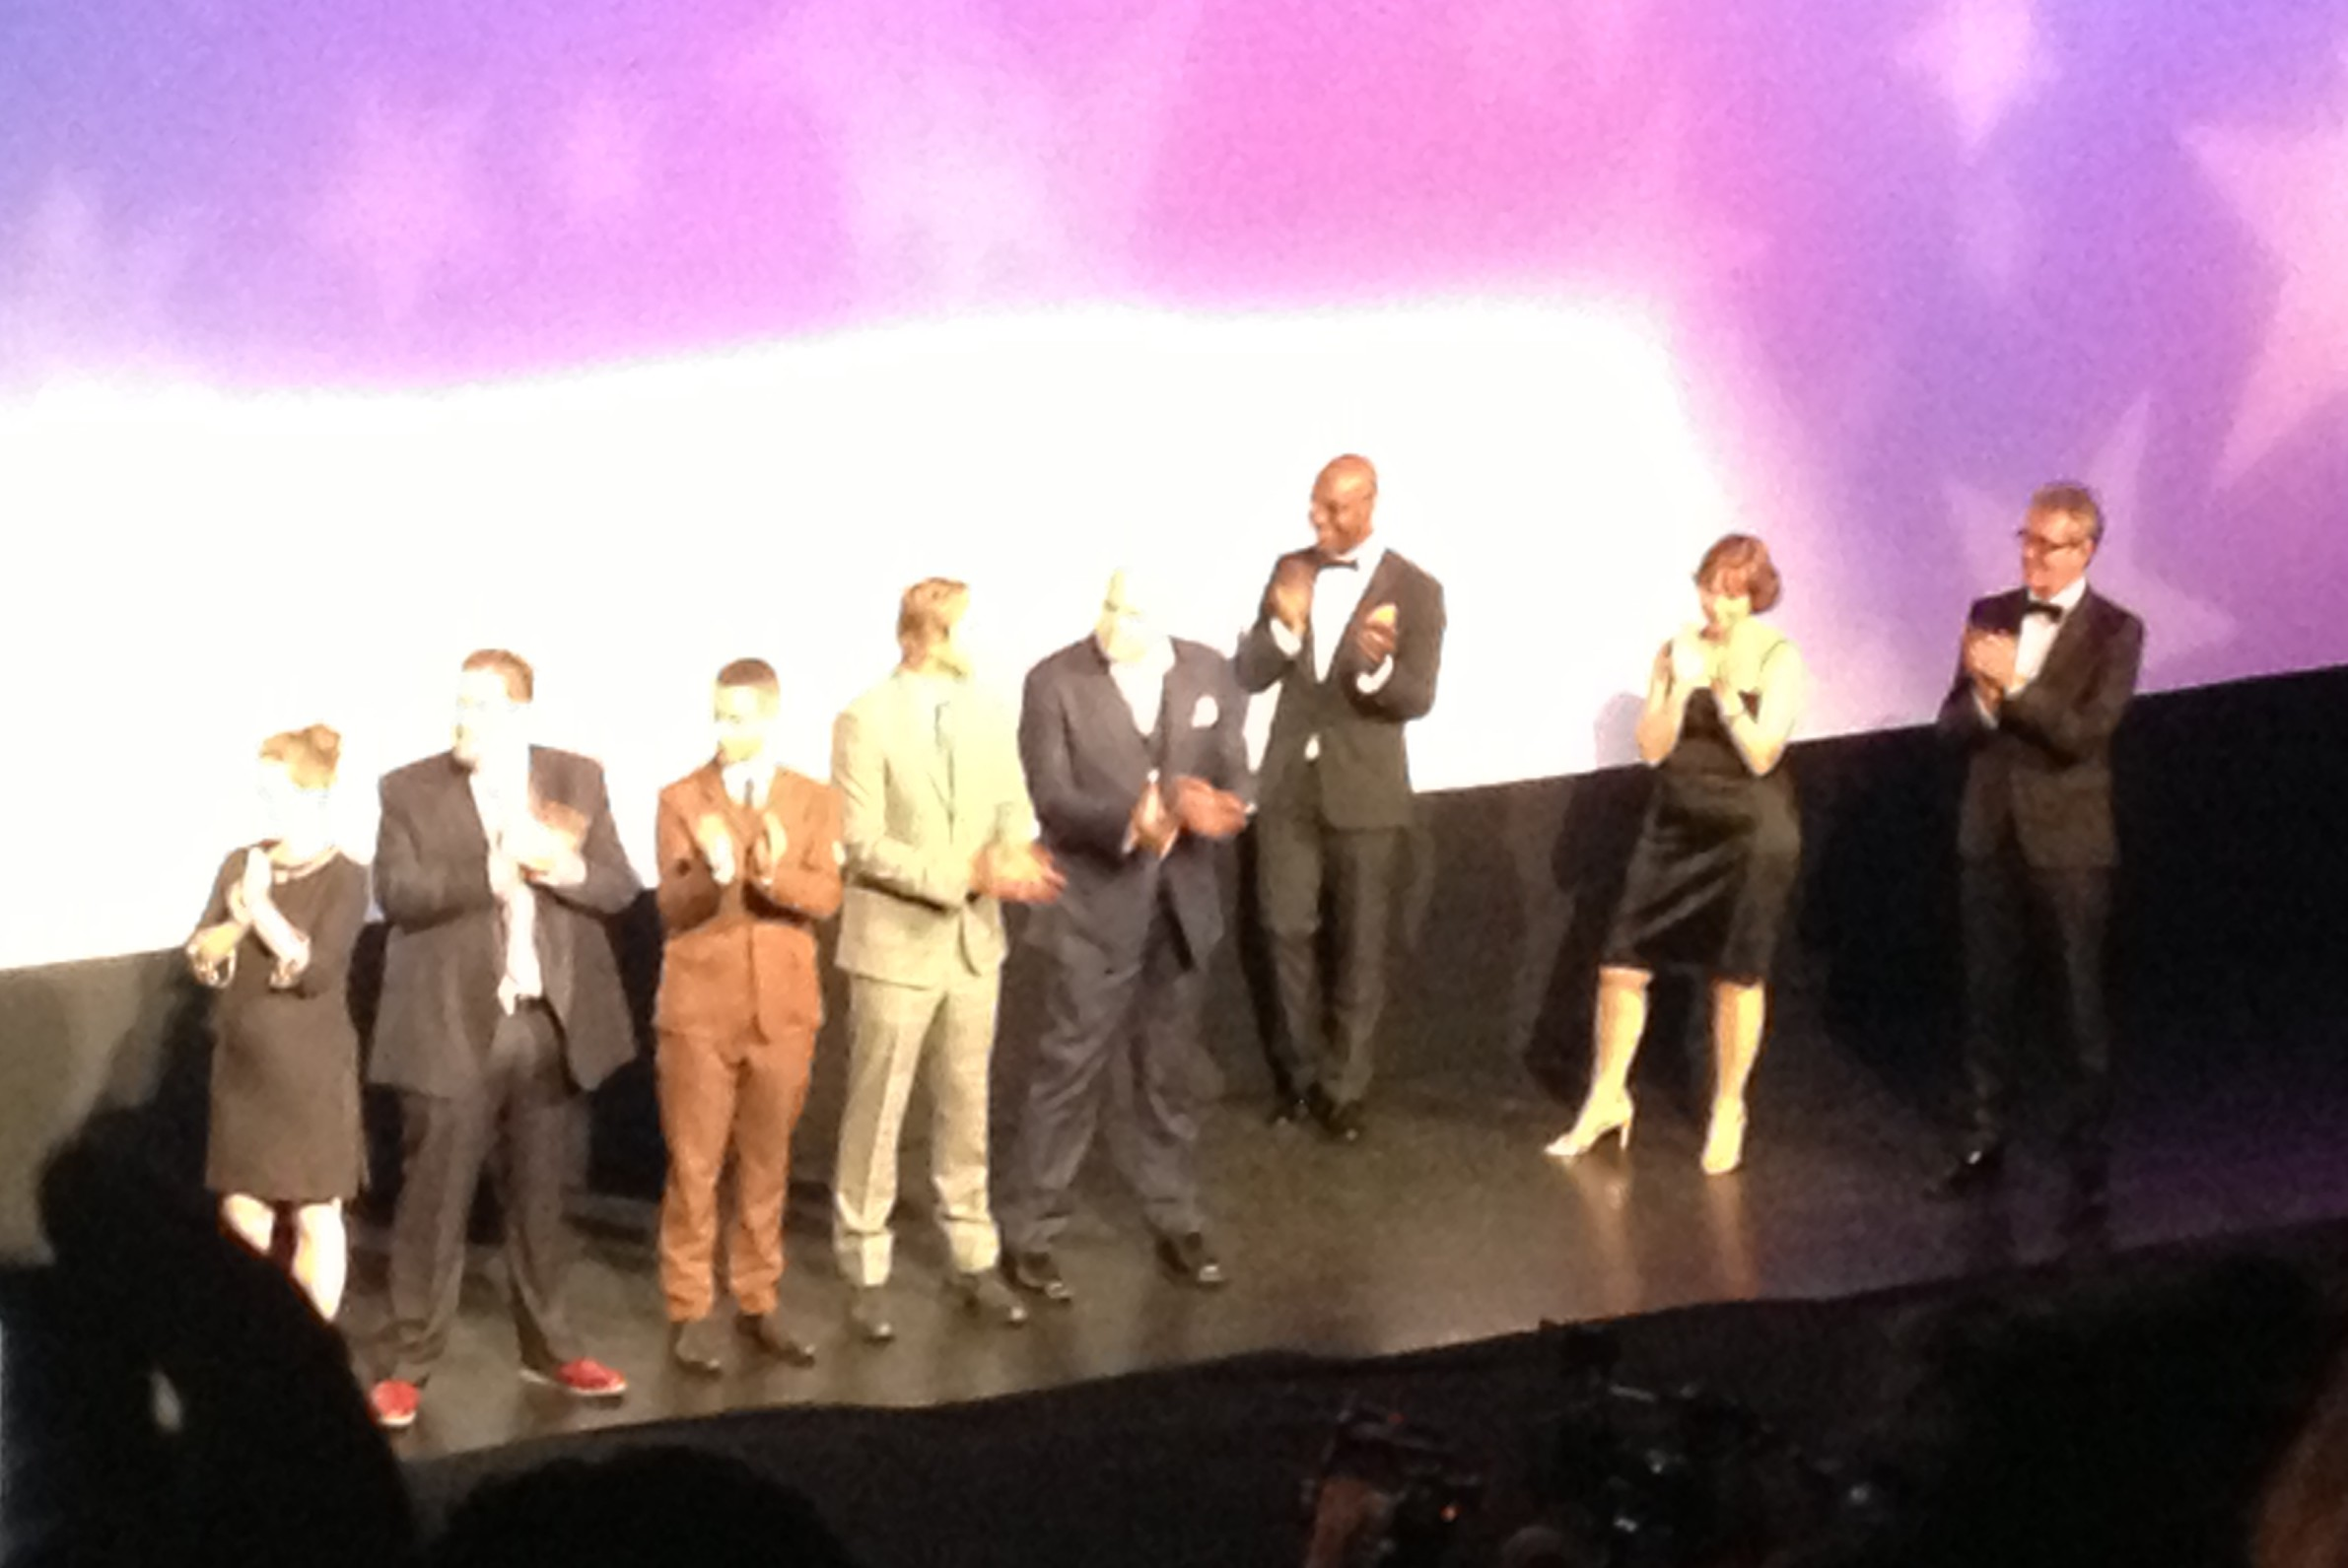 """The cast of the film """"The Judge"""" at the Toronto International Film Festival. (Photo courtesy of Sam East)"""